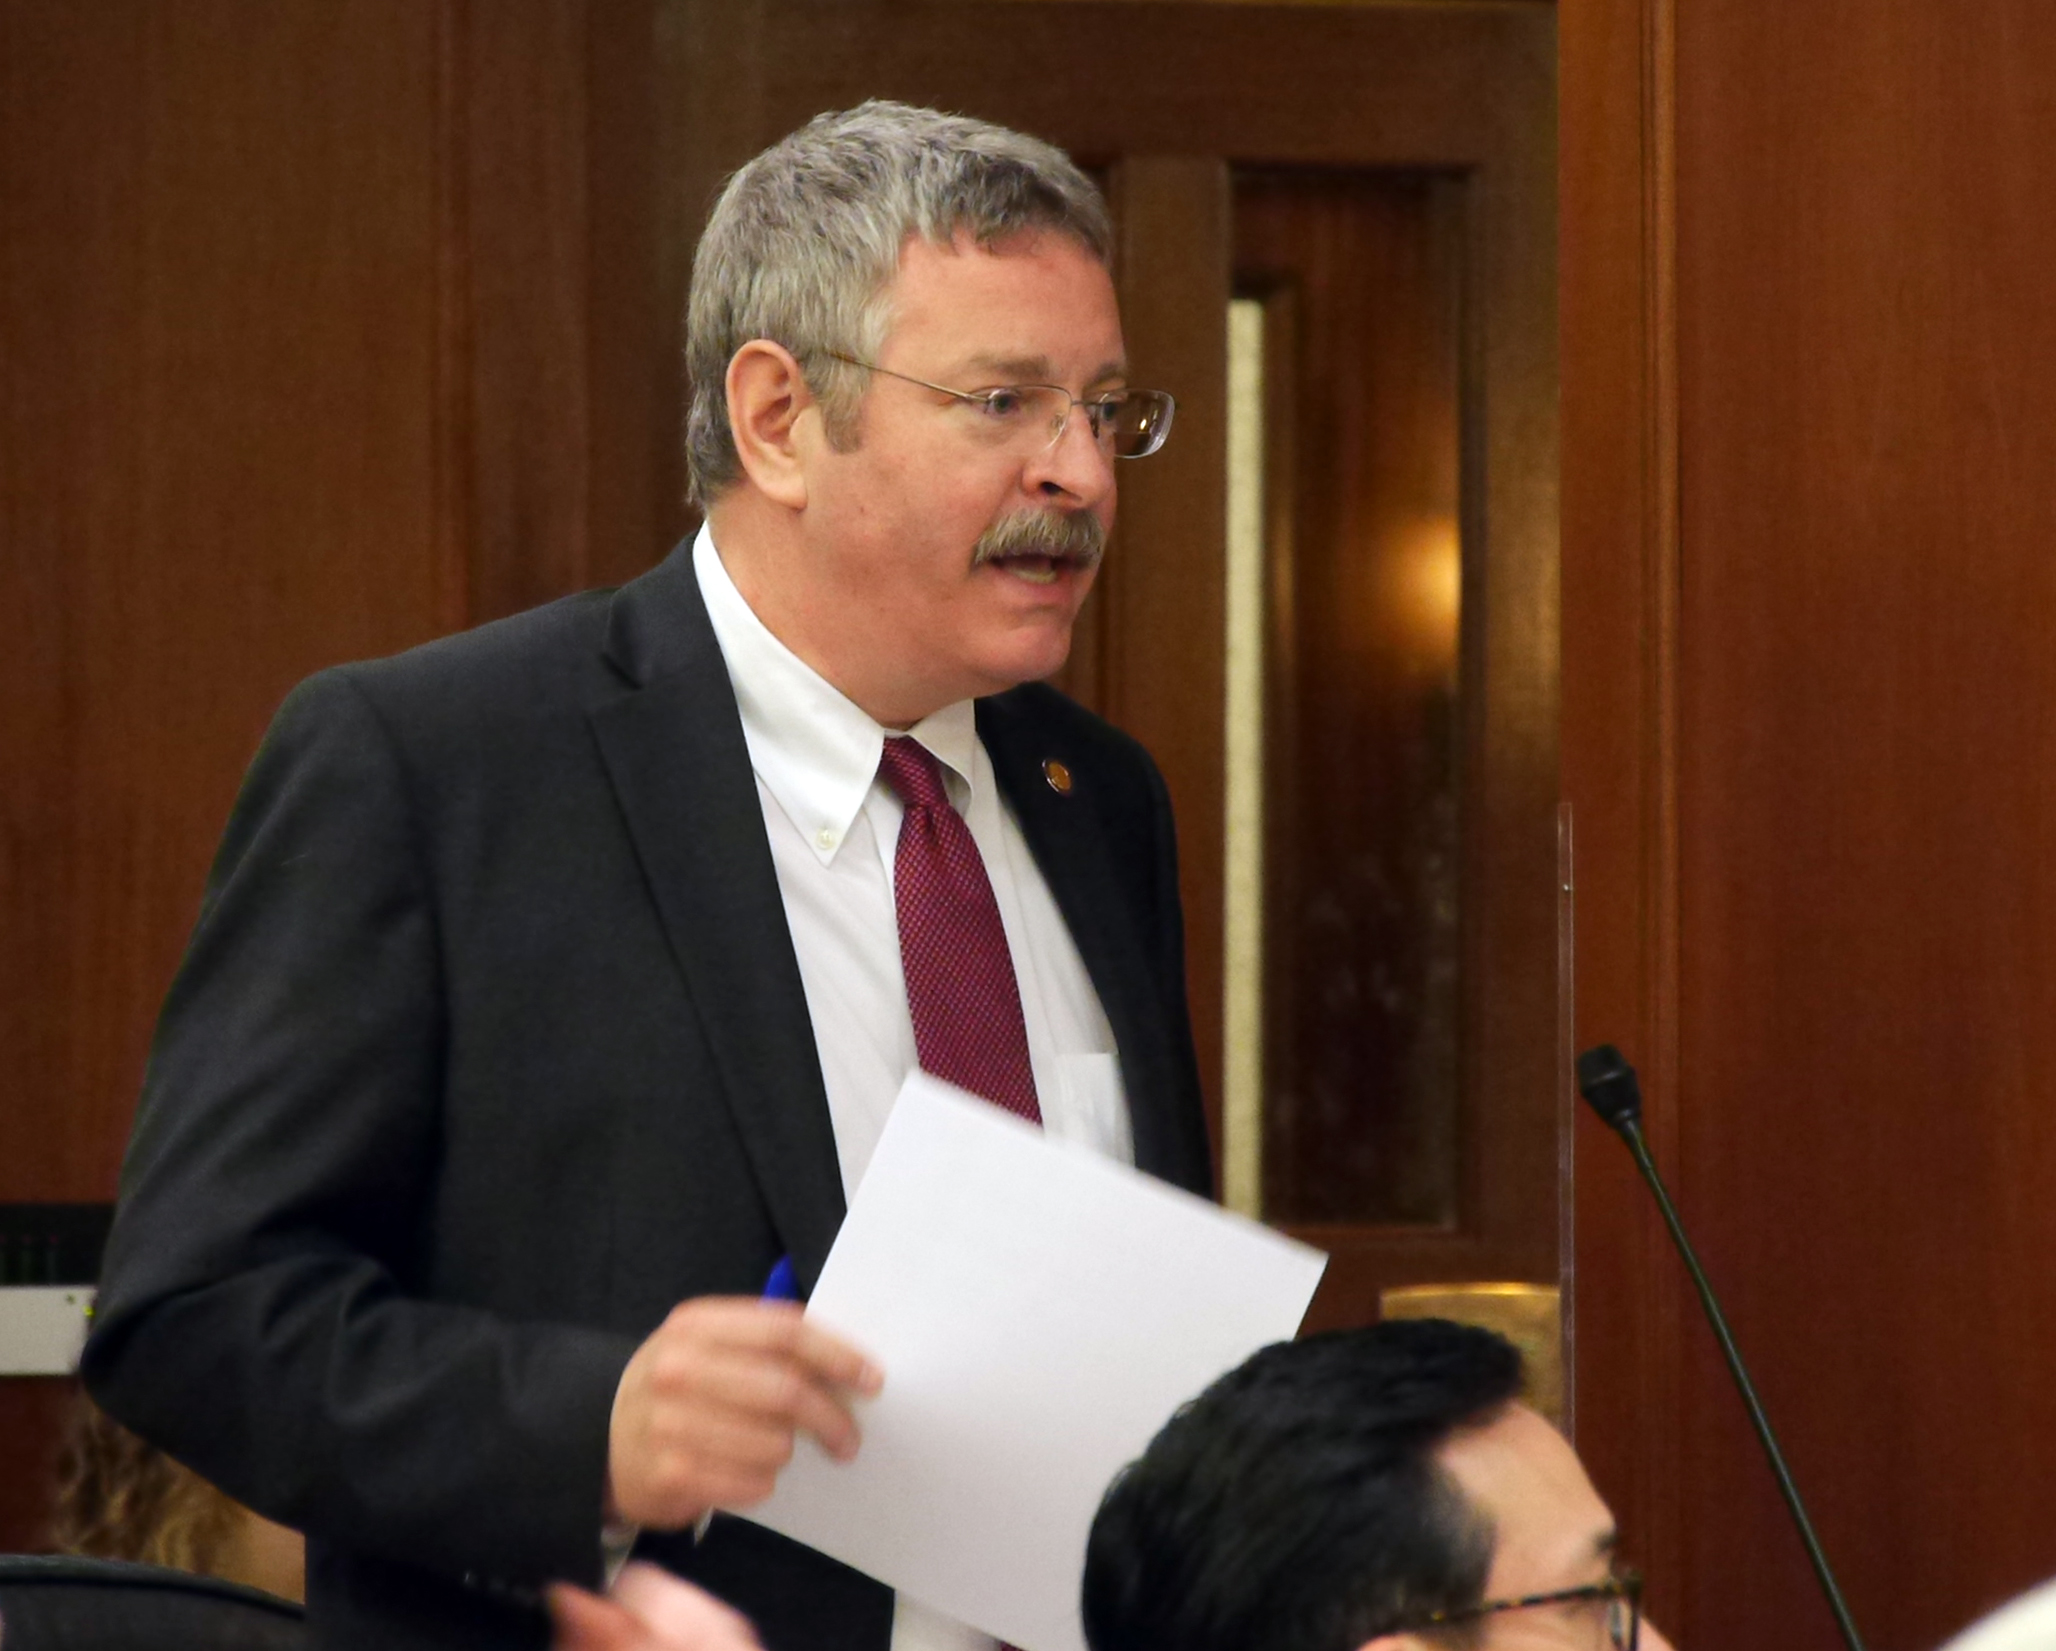 Rep. Dan Saddler, R-Eagle River, discusses the state operating budget on the floor the House of Representatives, March 11, 2016. (Photo by Skip Gray, 360 North)